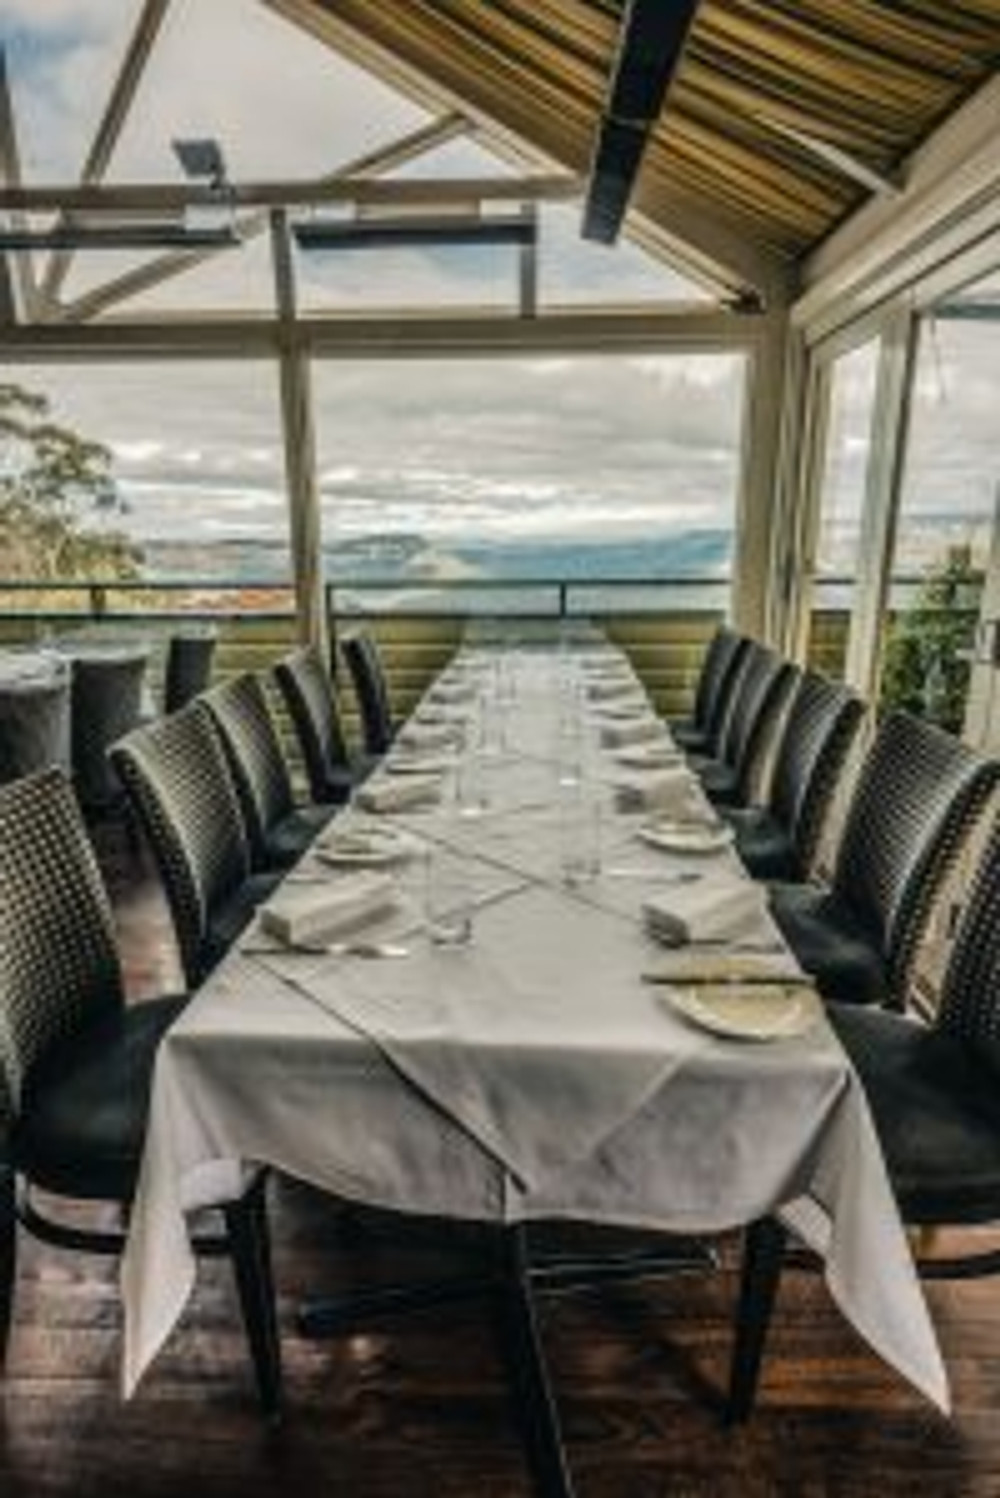 Breathtaking views from Echoes Restaurant